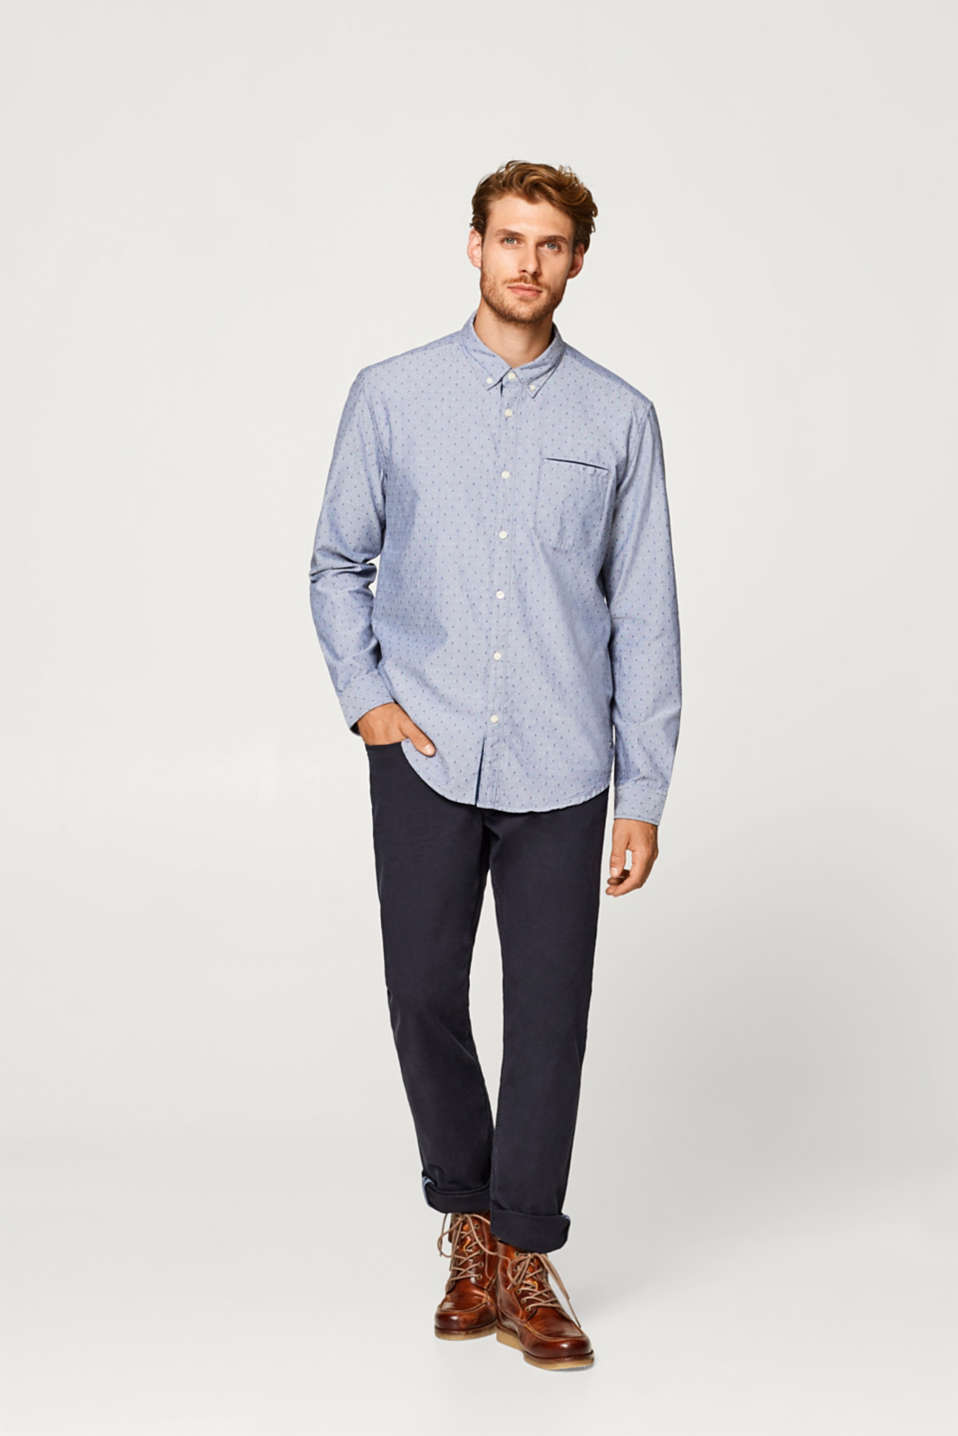 Esprit - Shirt with a diamond embroidery, 100% cotton